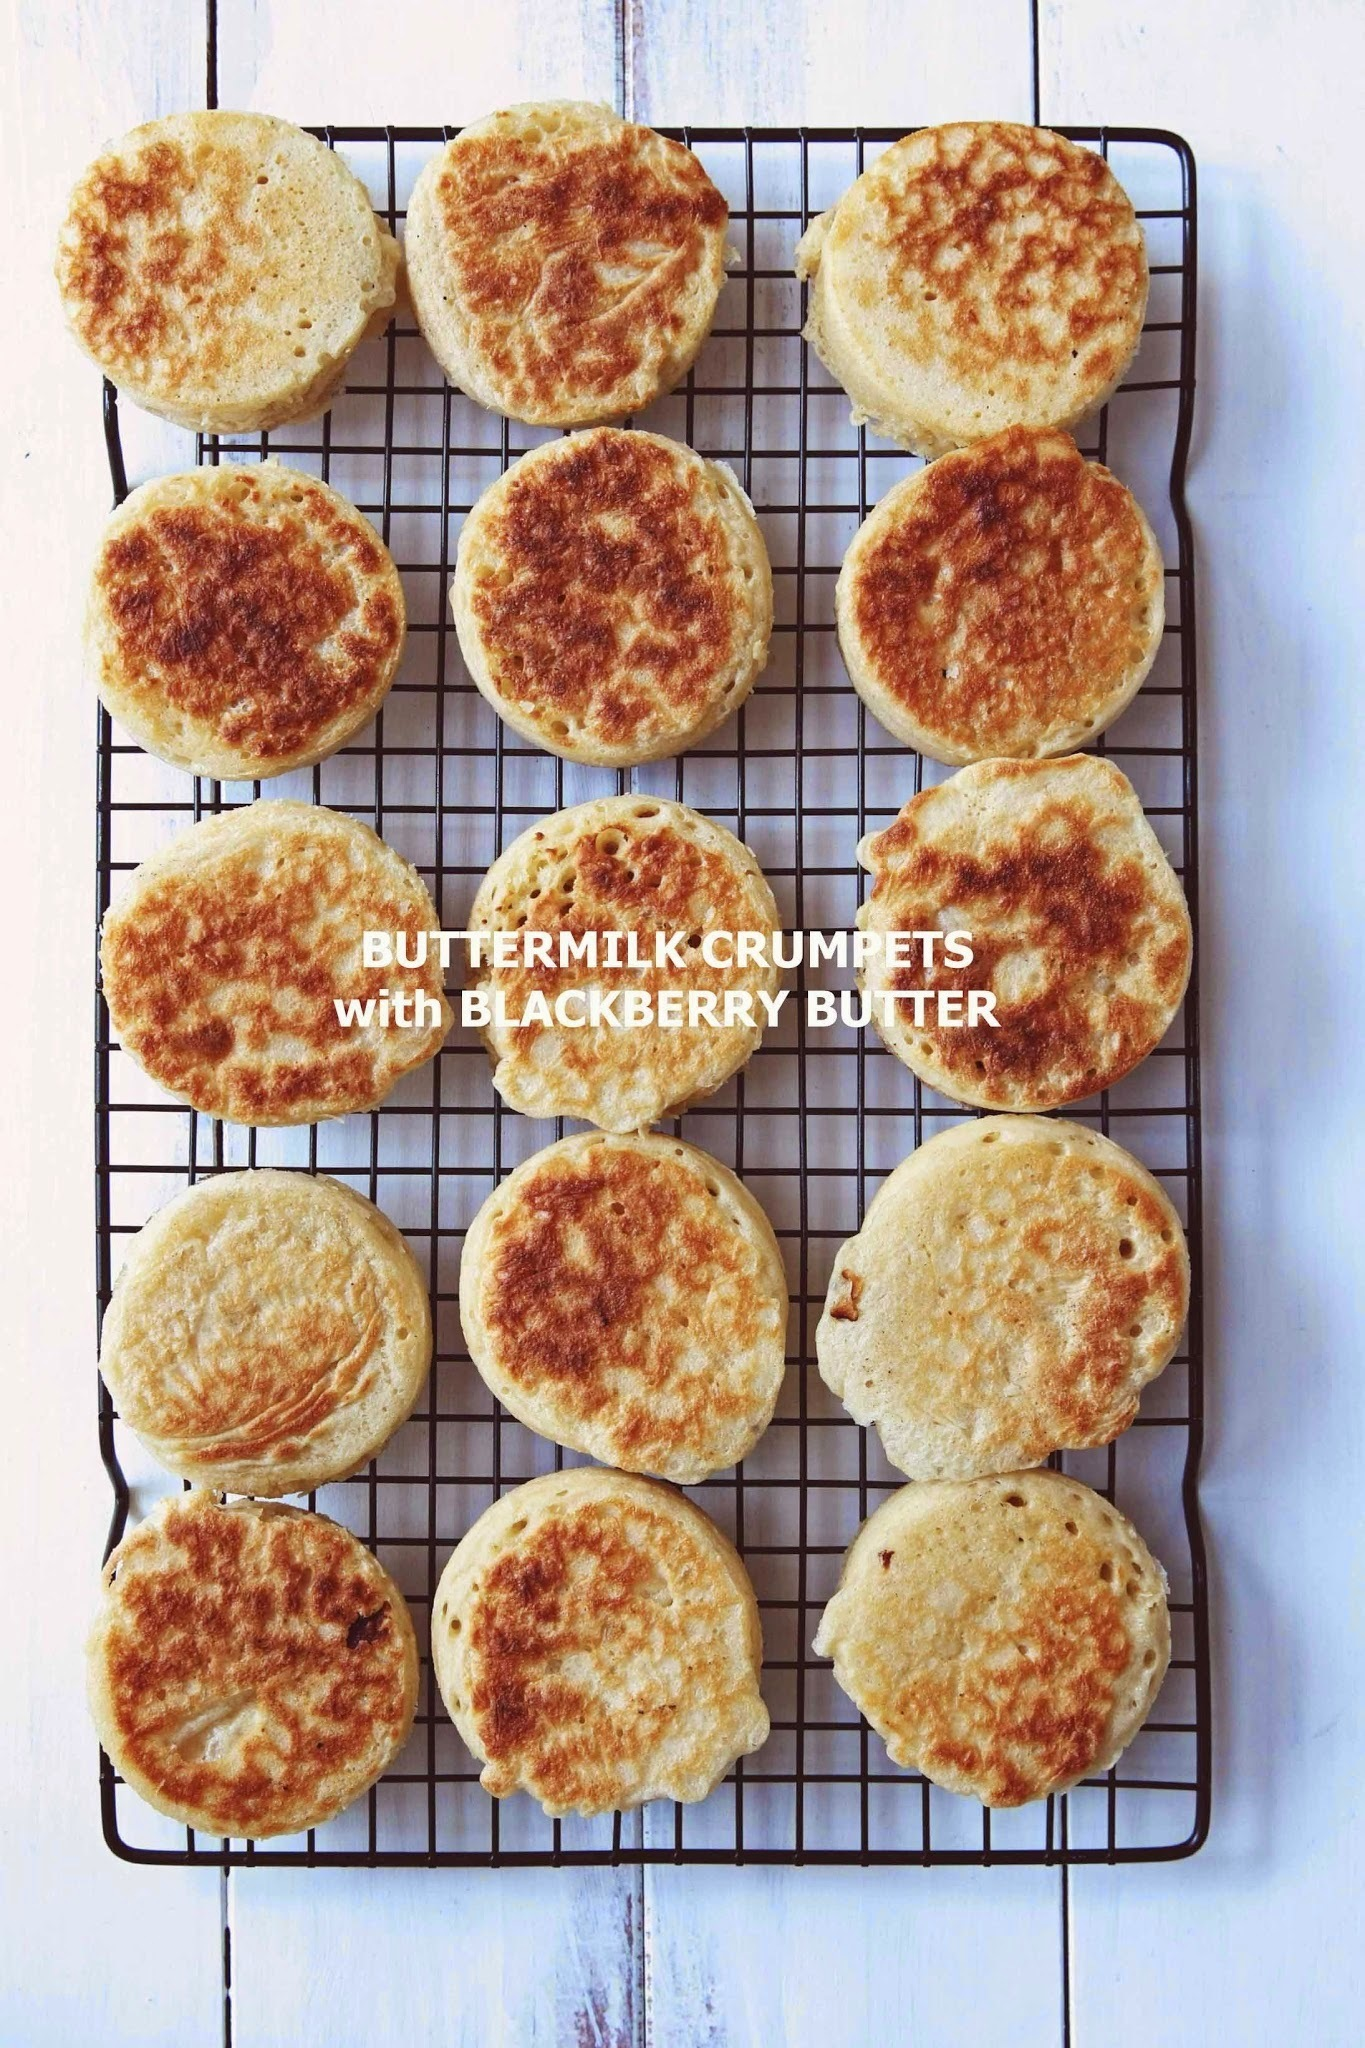 Buttermilk Crumpets with Blackberry Butter